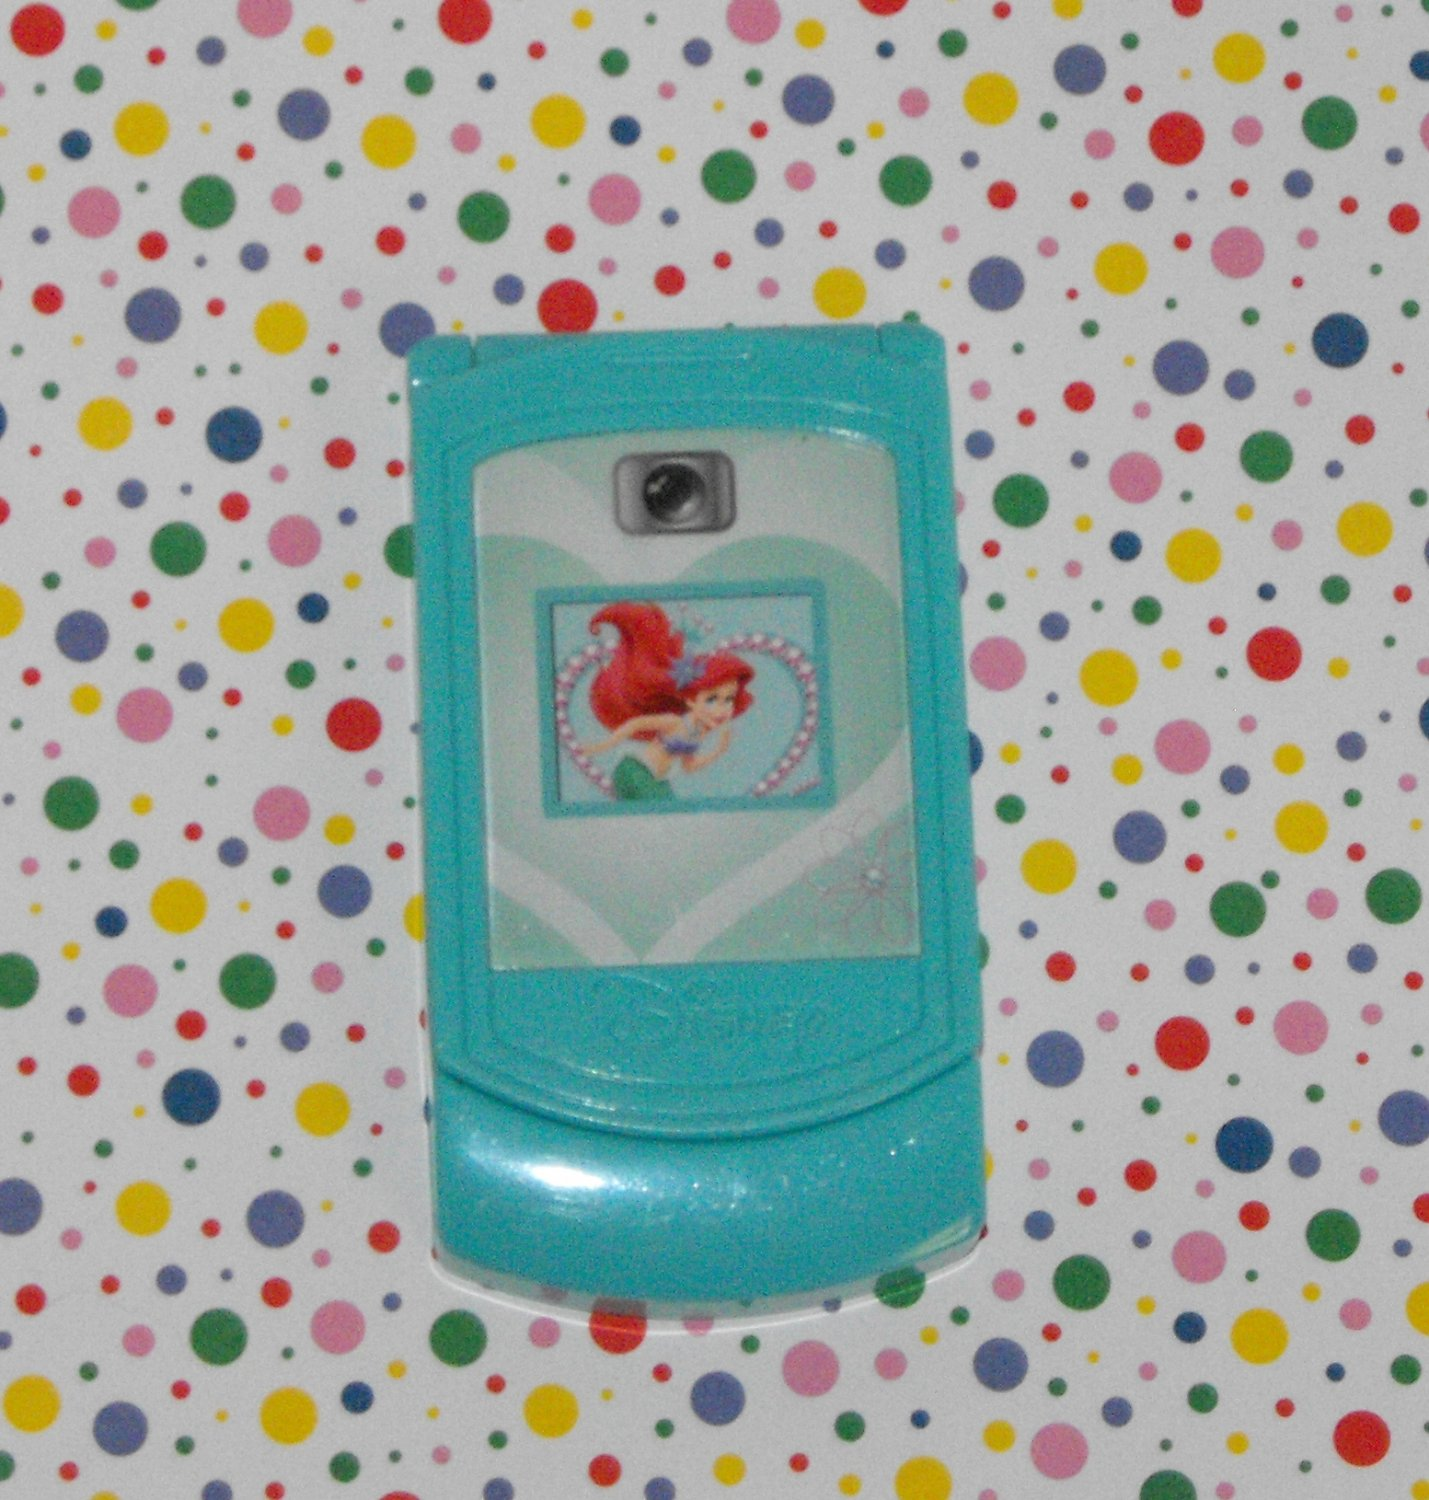 12*SOLD~Disney's Little Mermaid Talking Cell Phone Toy